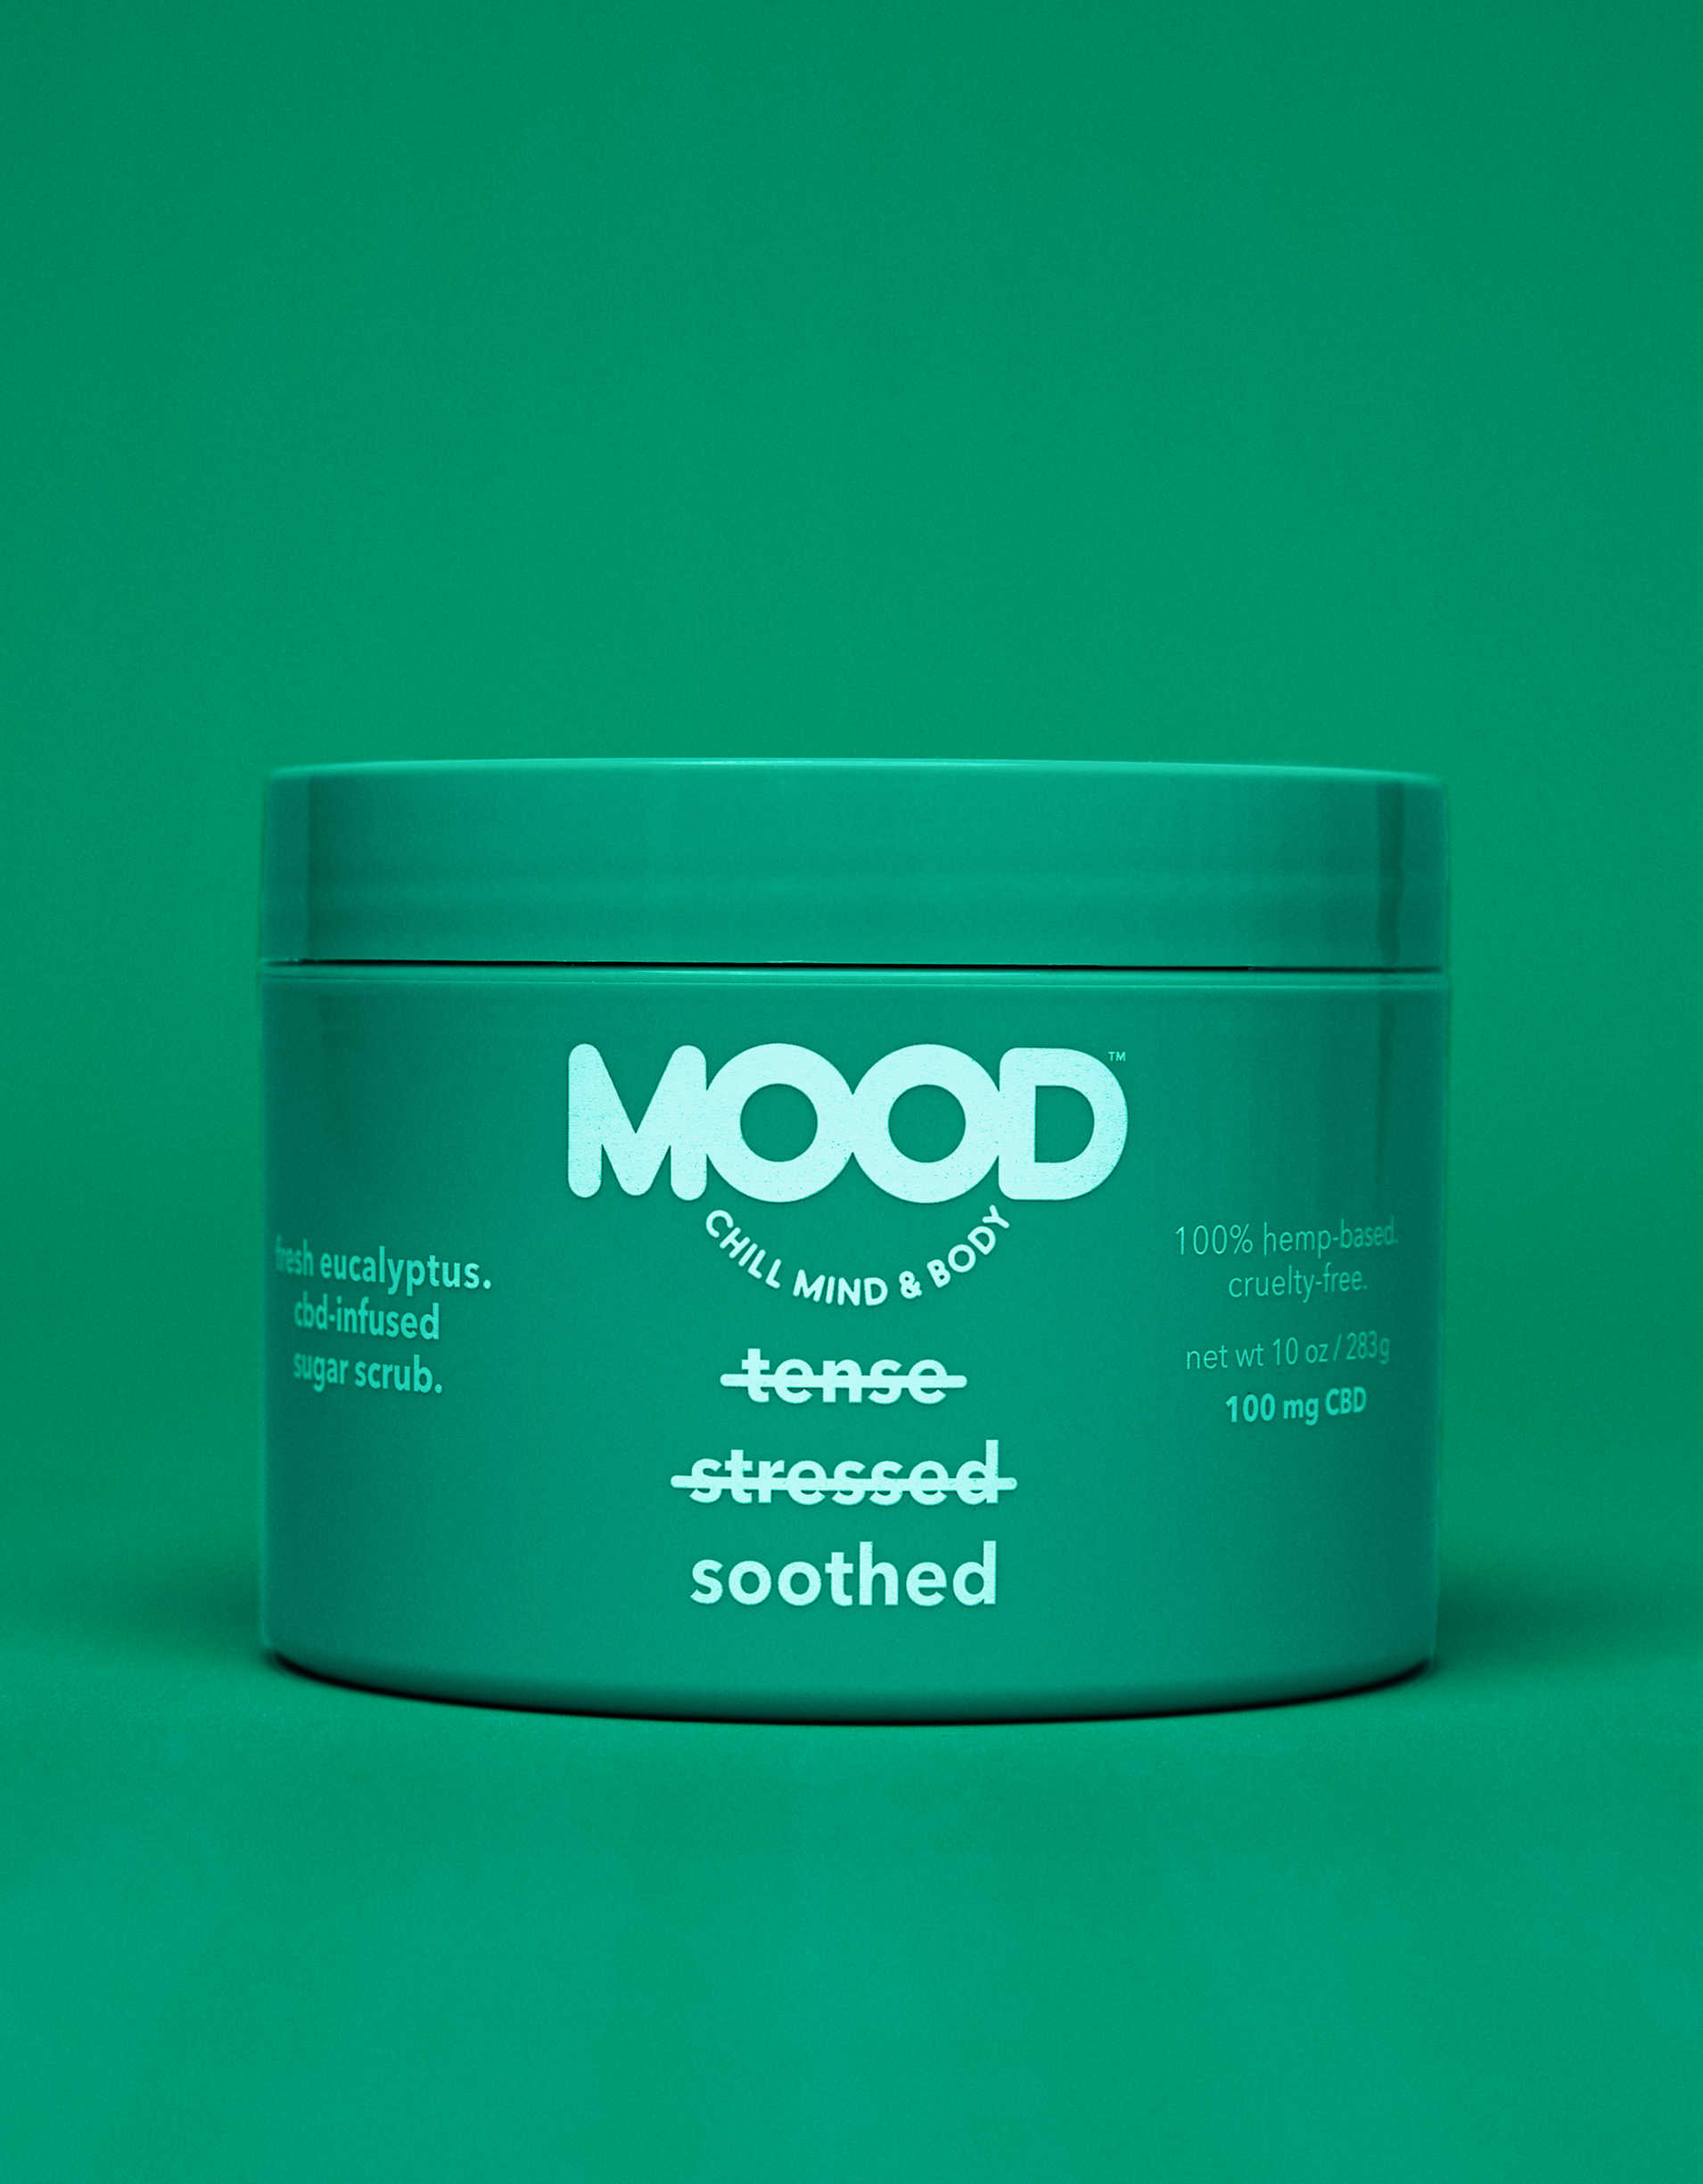 MOOD Soothed CBD-Infused Sugar Scrub